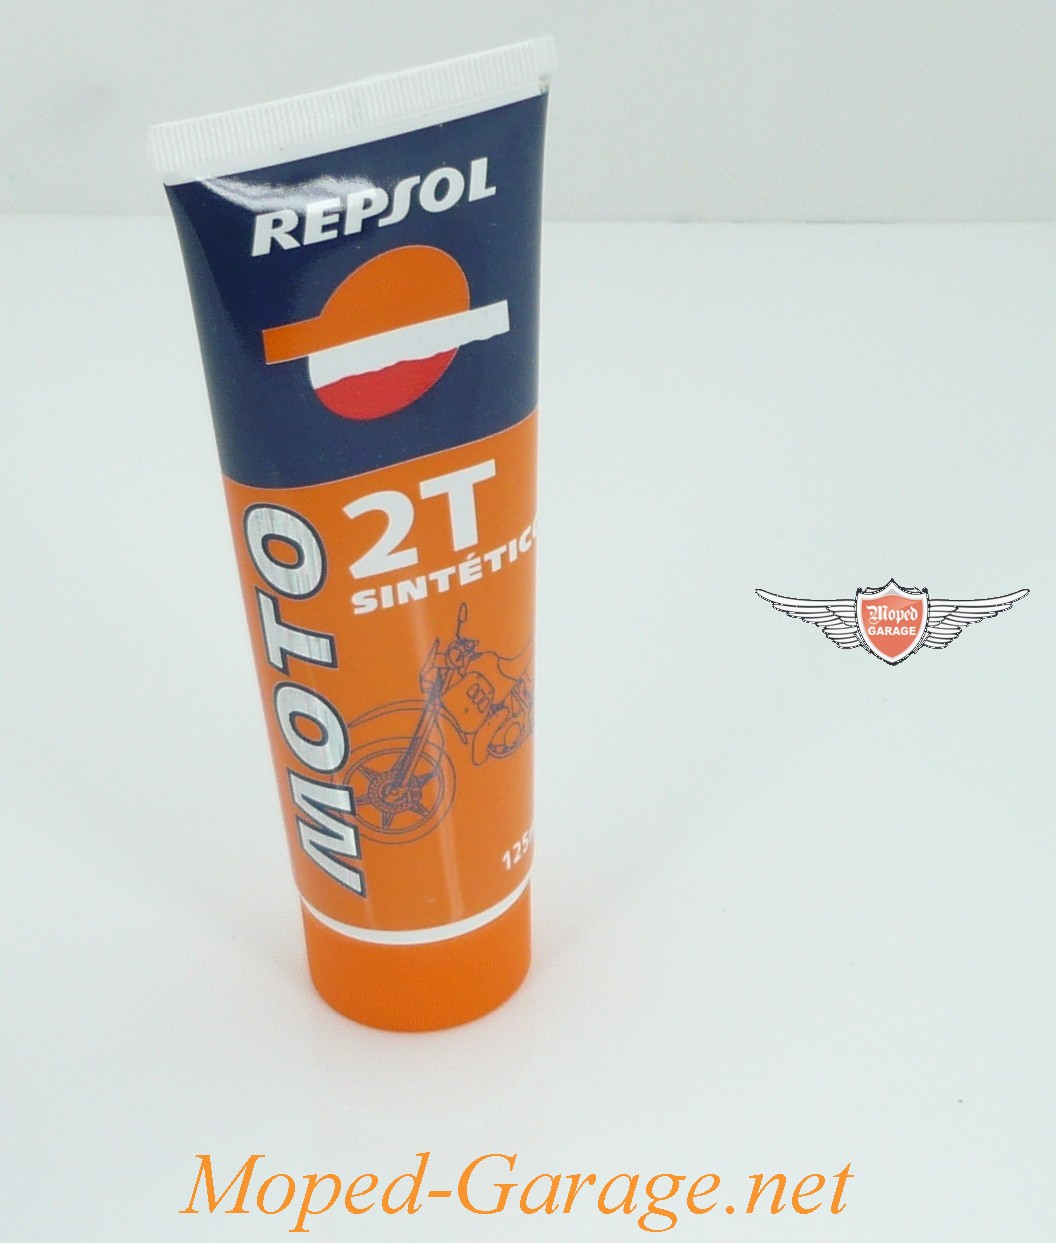 moped 2 takt l syntetic repsol 125ml moped teile kaufen. Black Bedroom Furniture Sets. Home Design Ideas